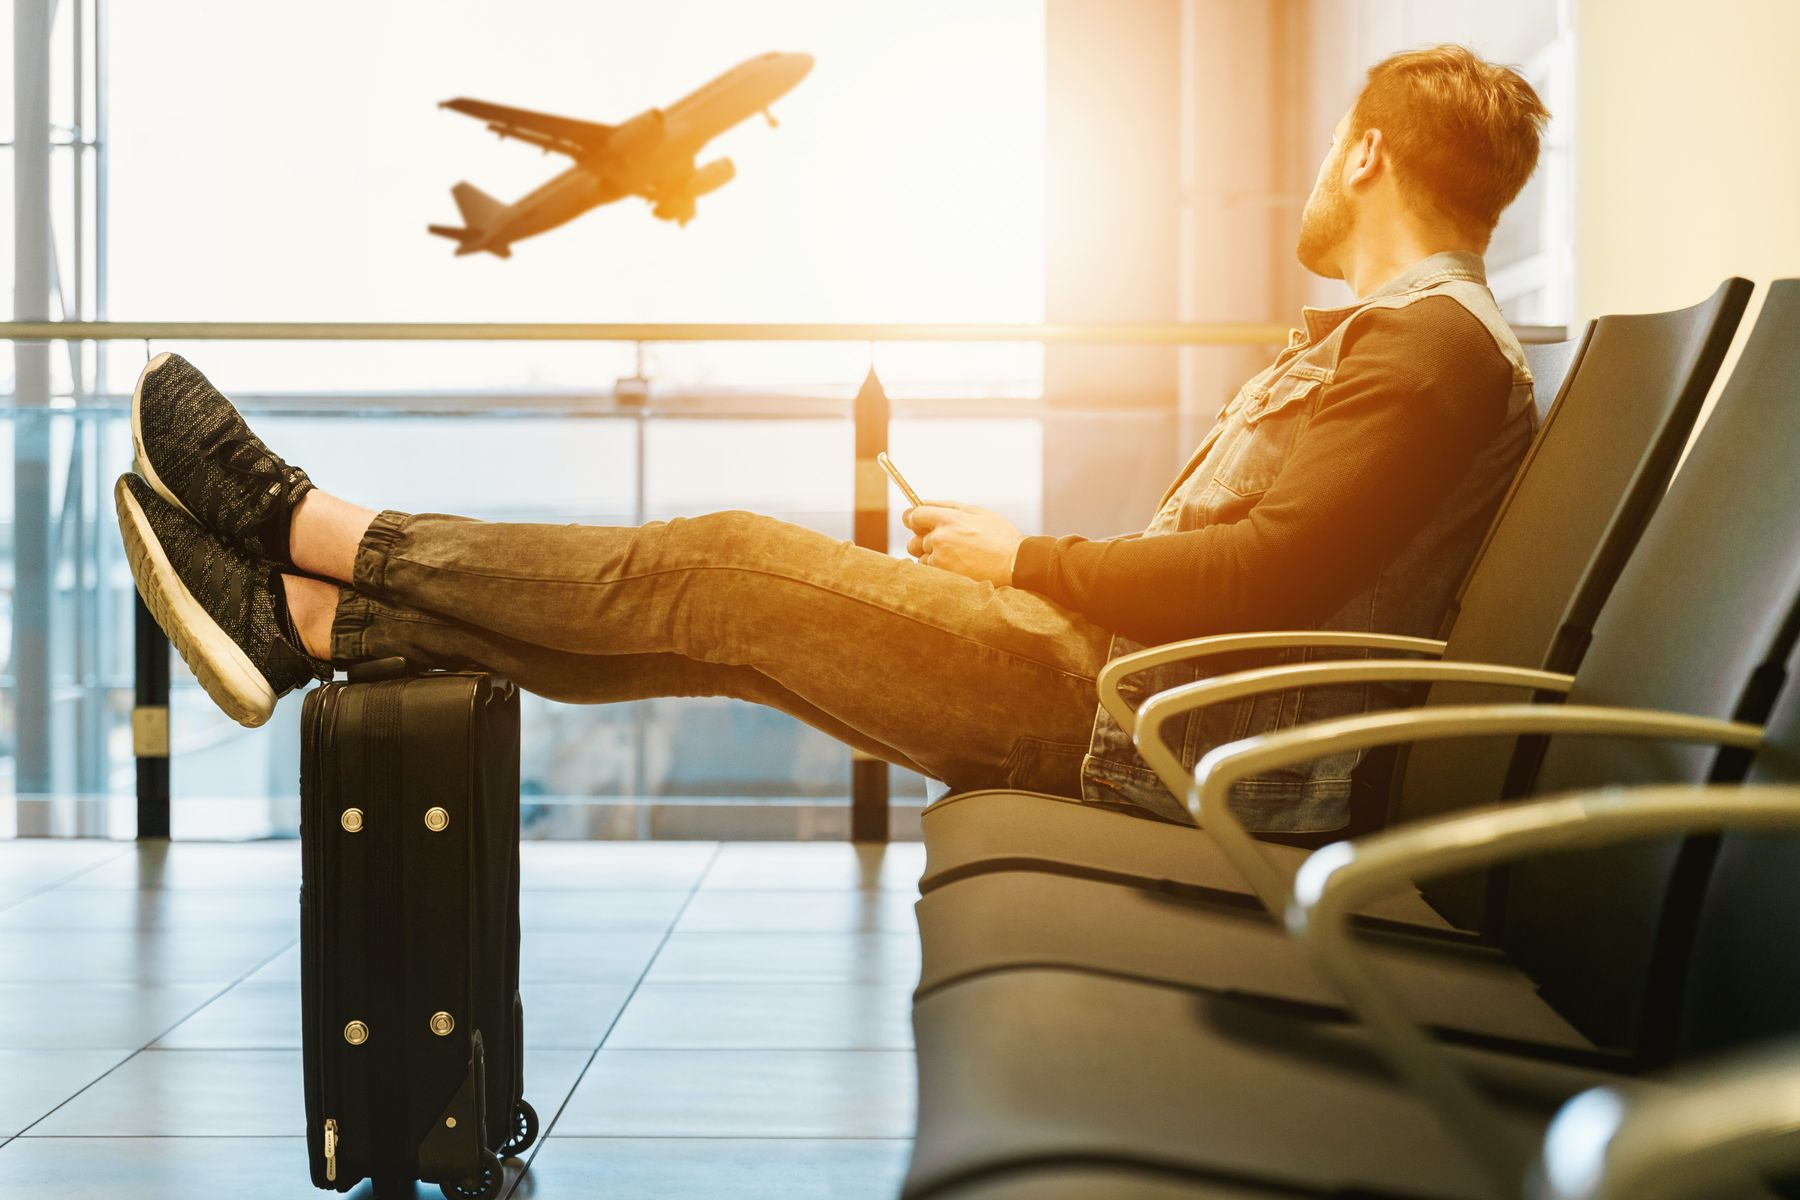 A man sits with his feet on his suitcase while a plane takes off in the background.